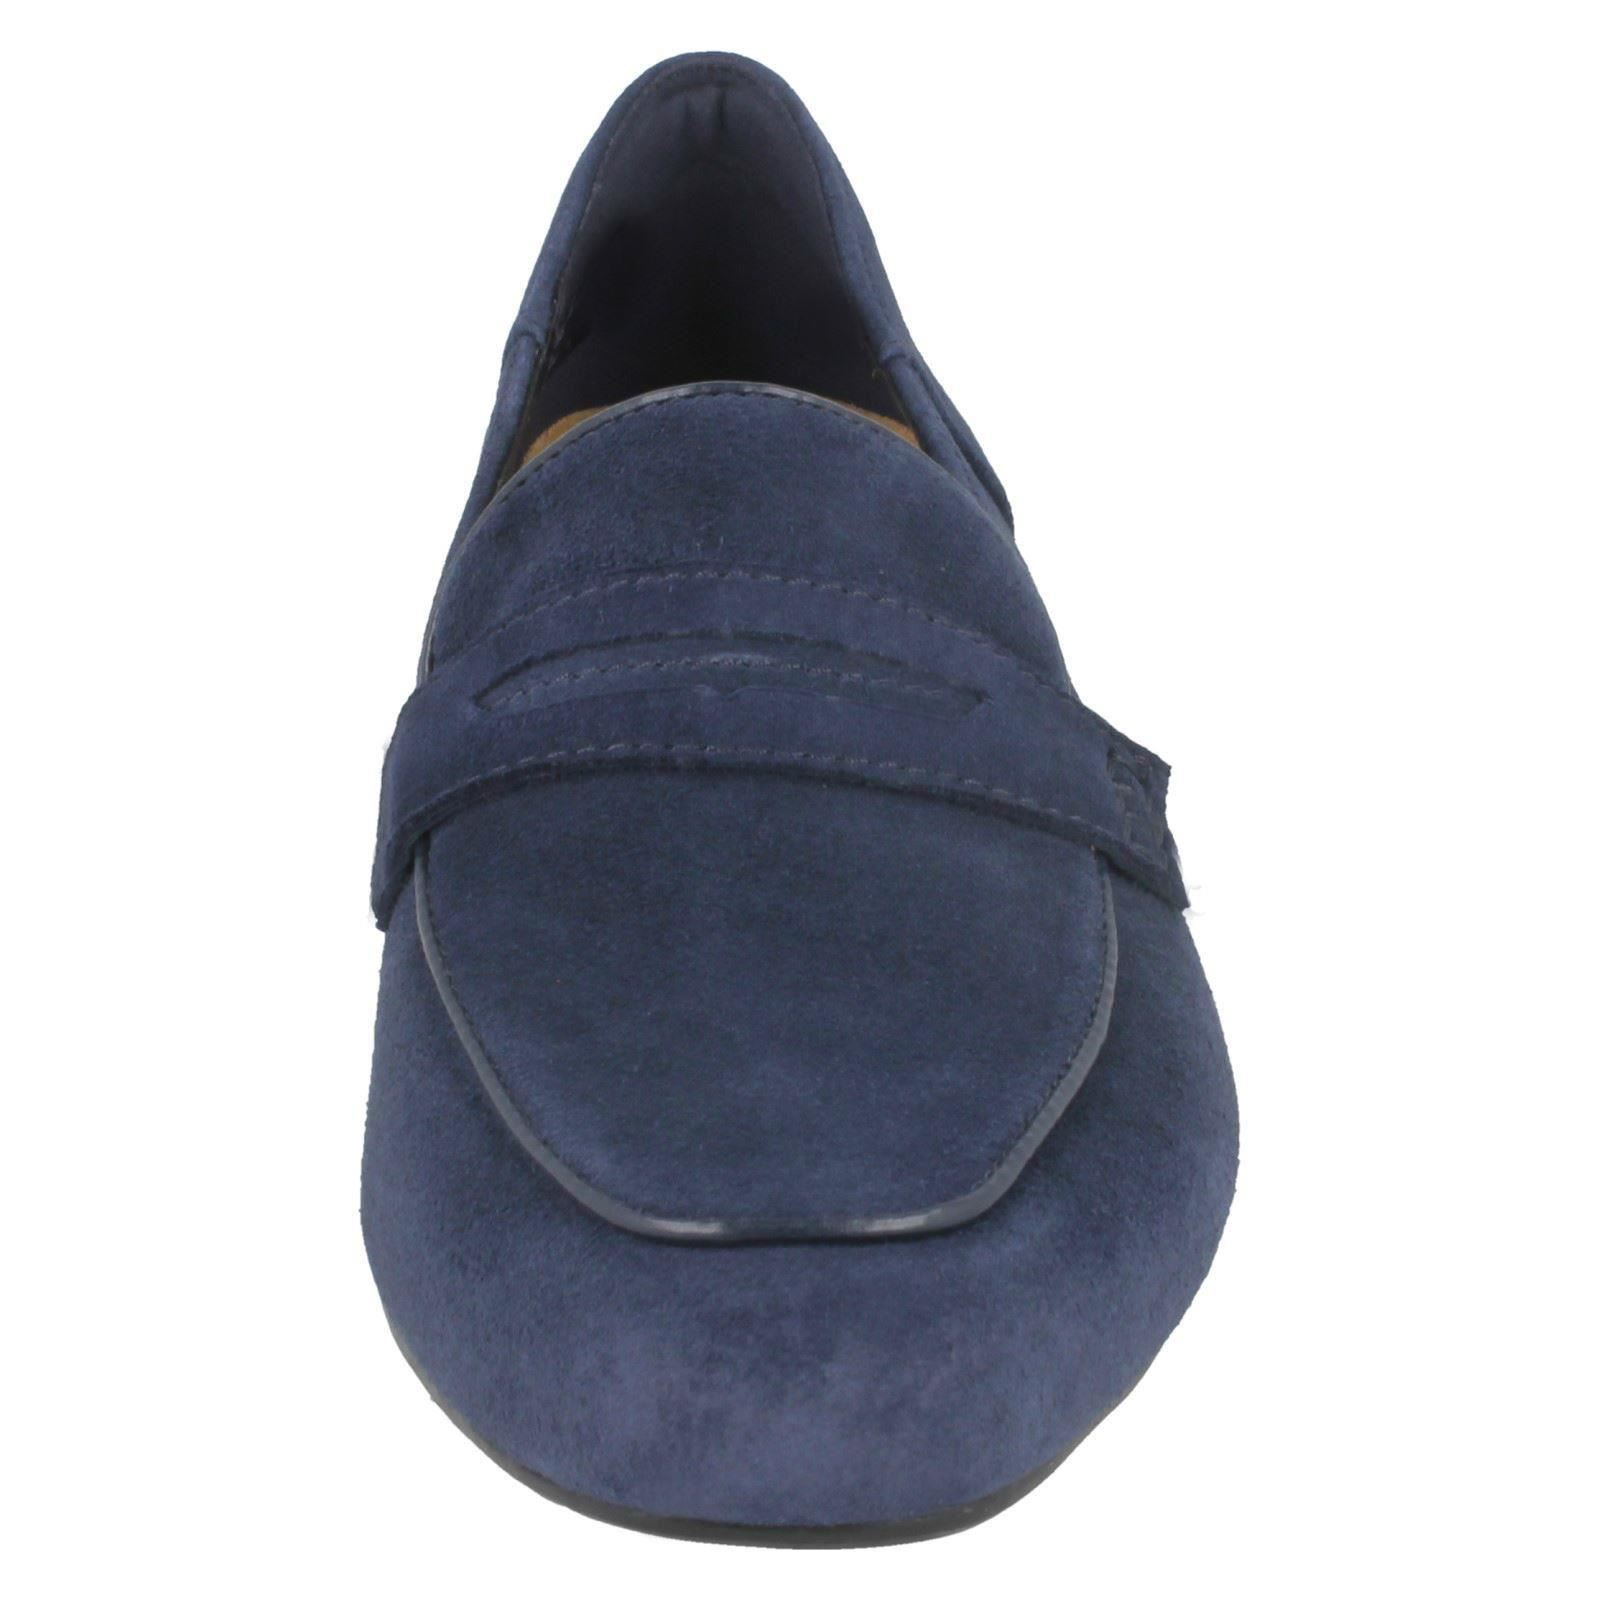 Clarks Wide Fitting Flat Shoes